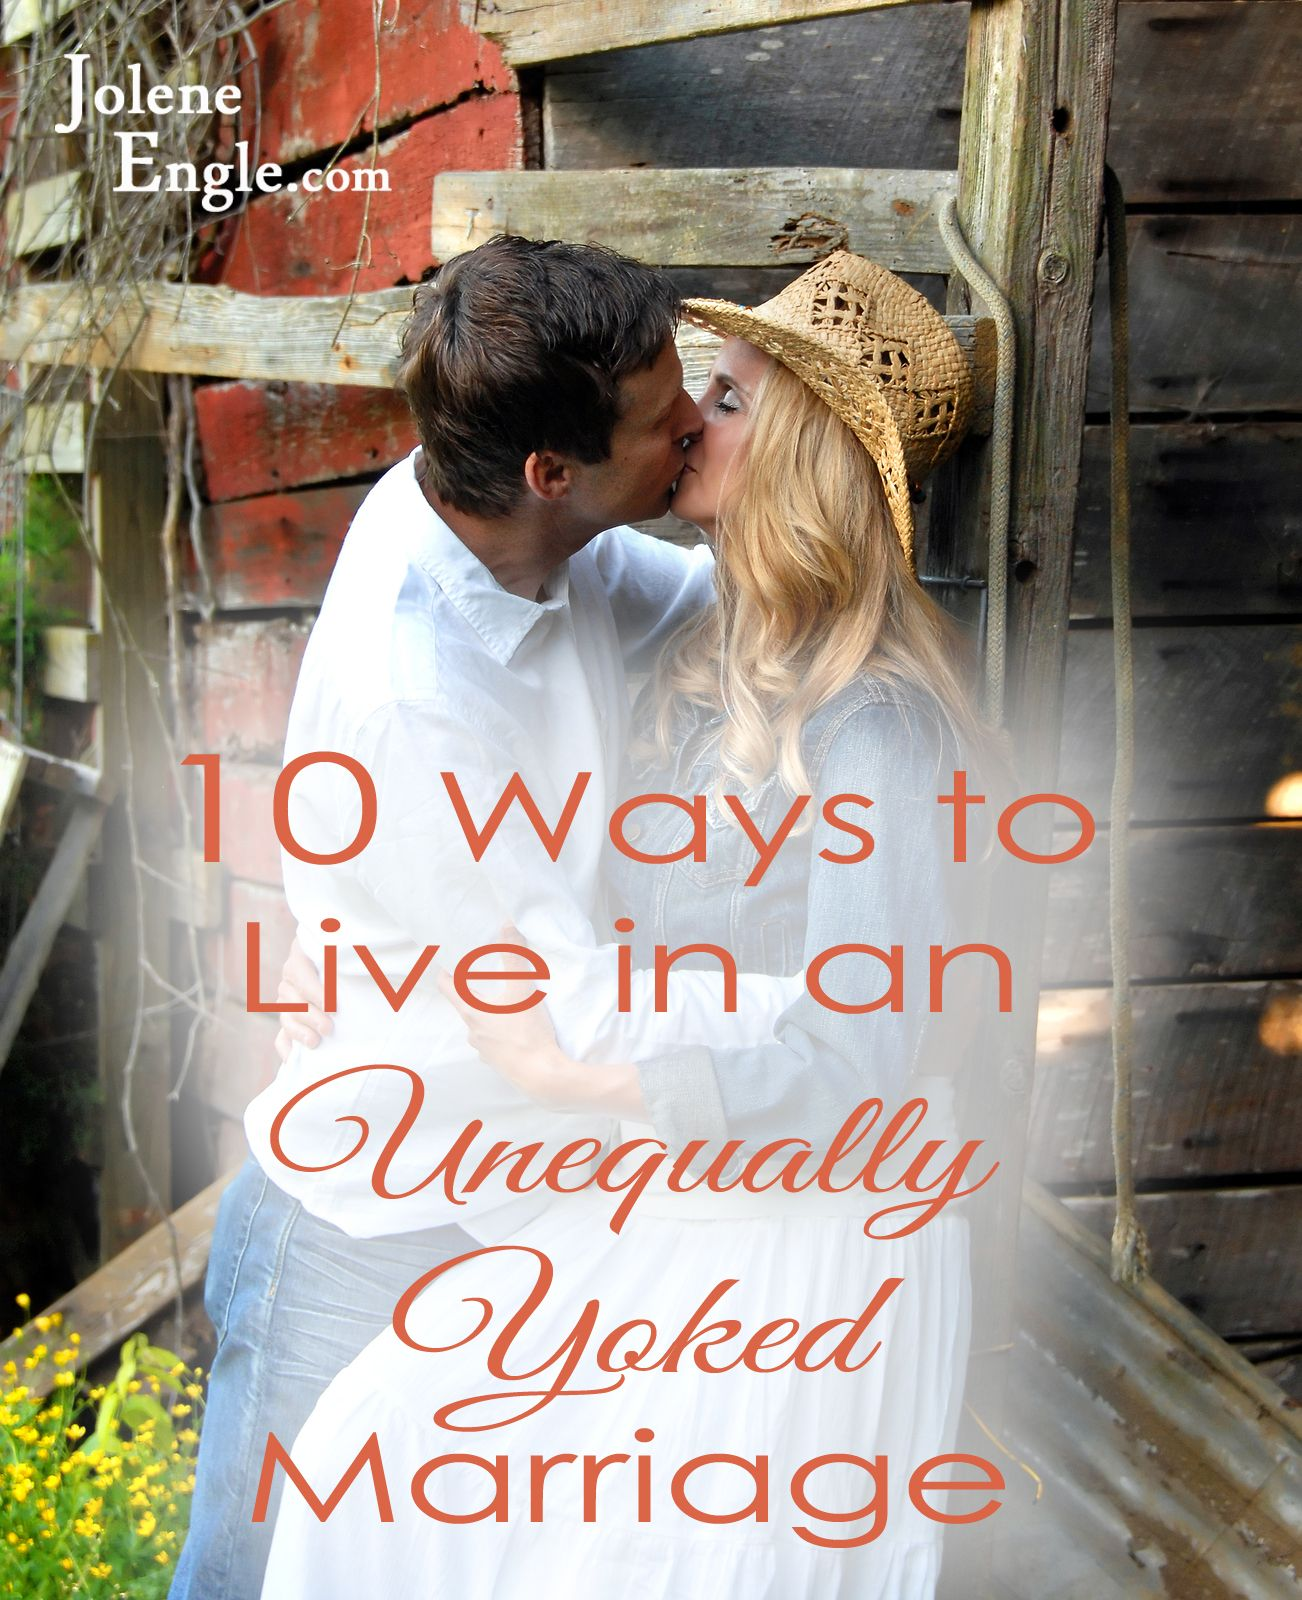 Unevenly yoked marriage